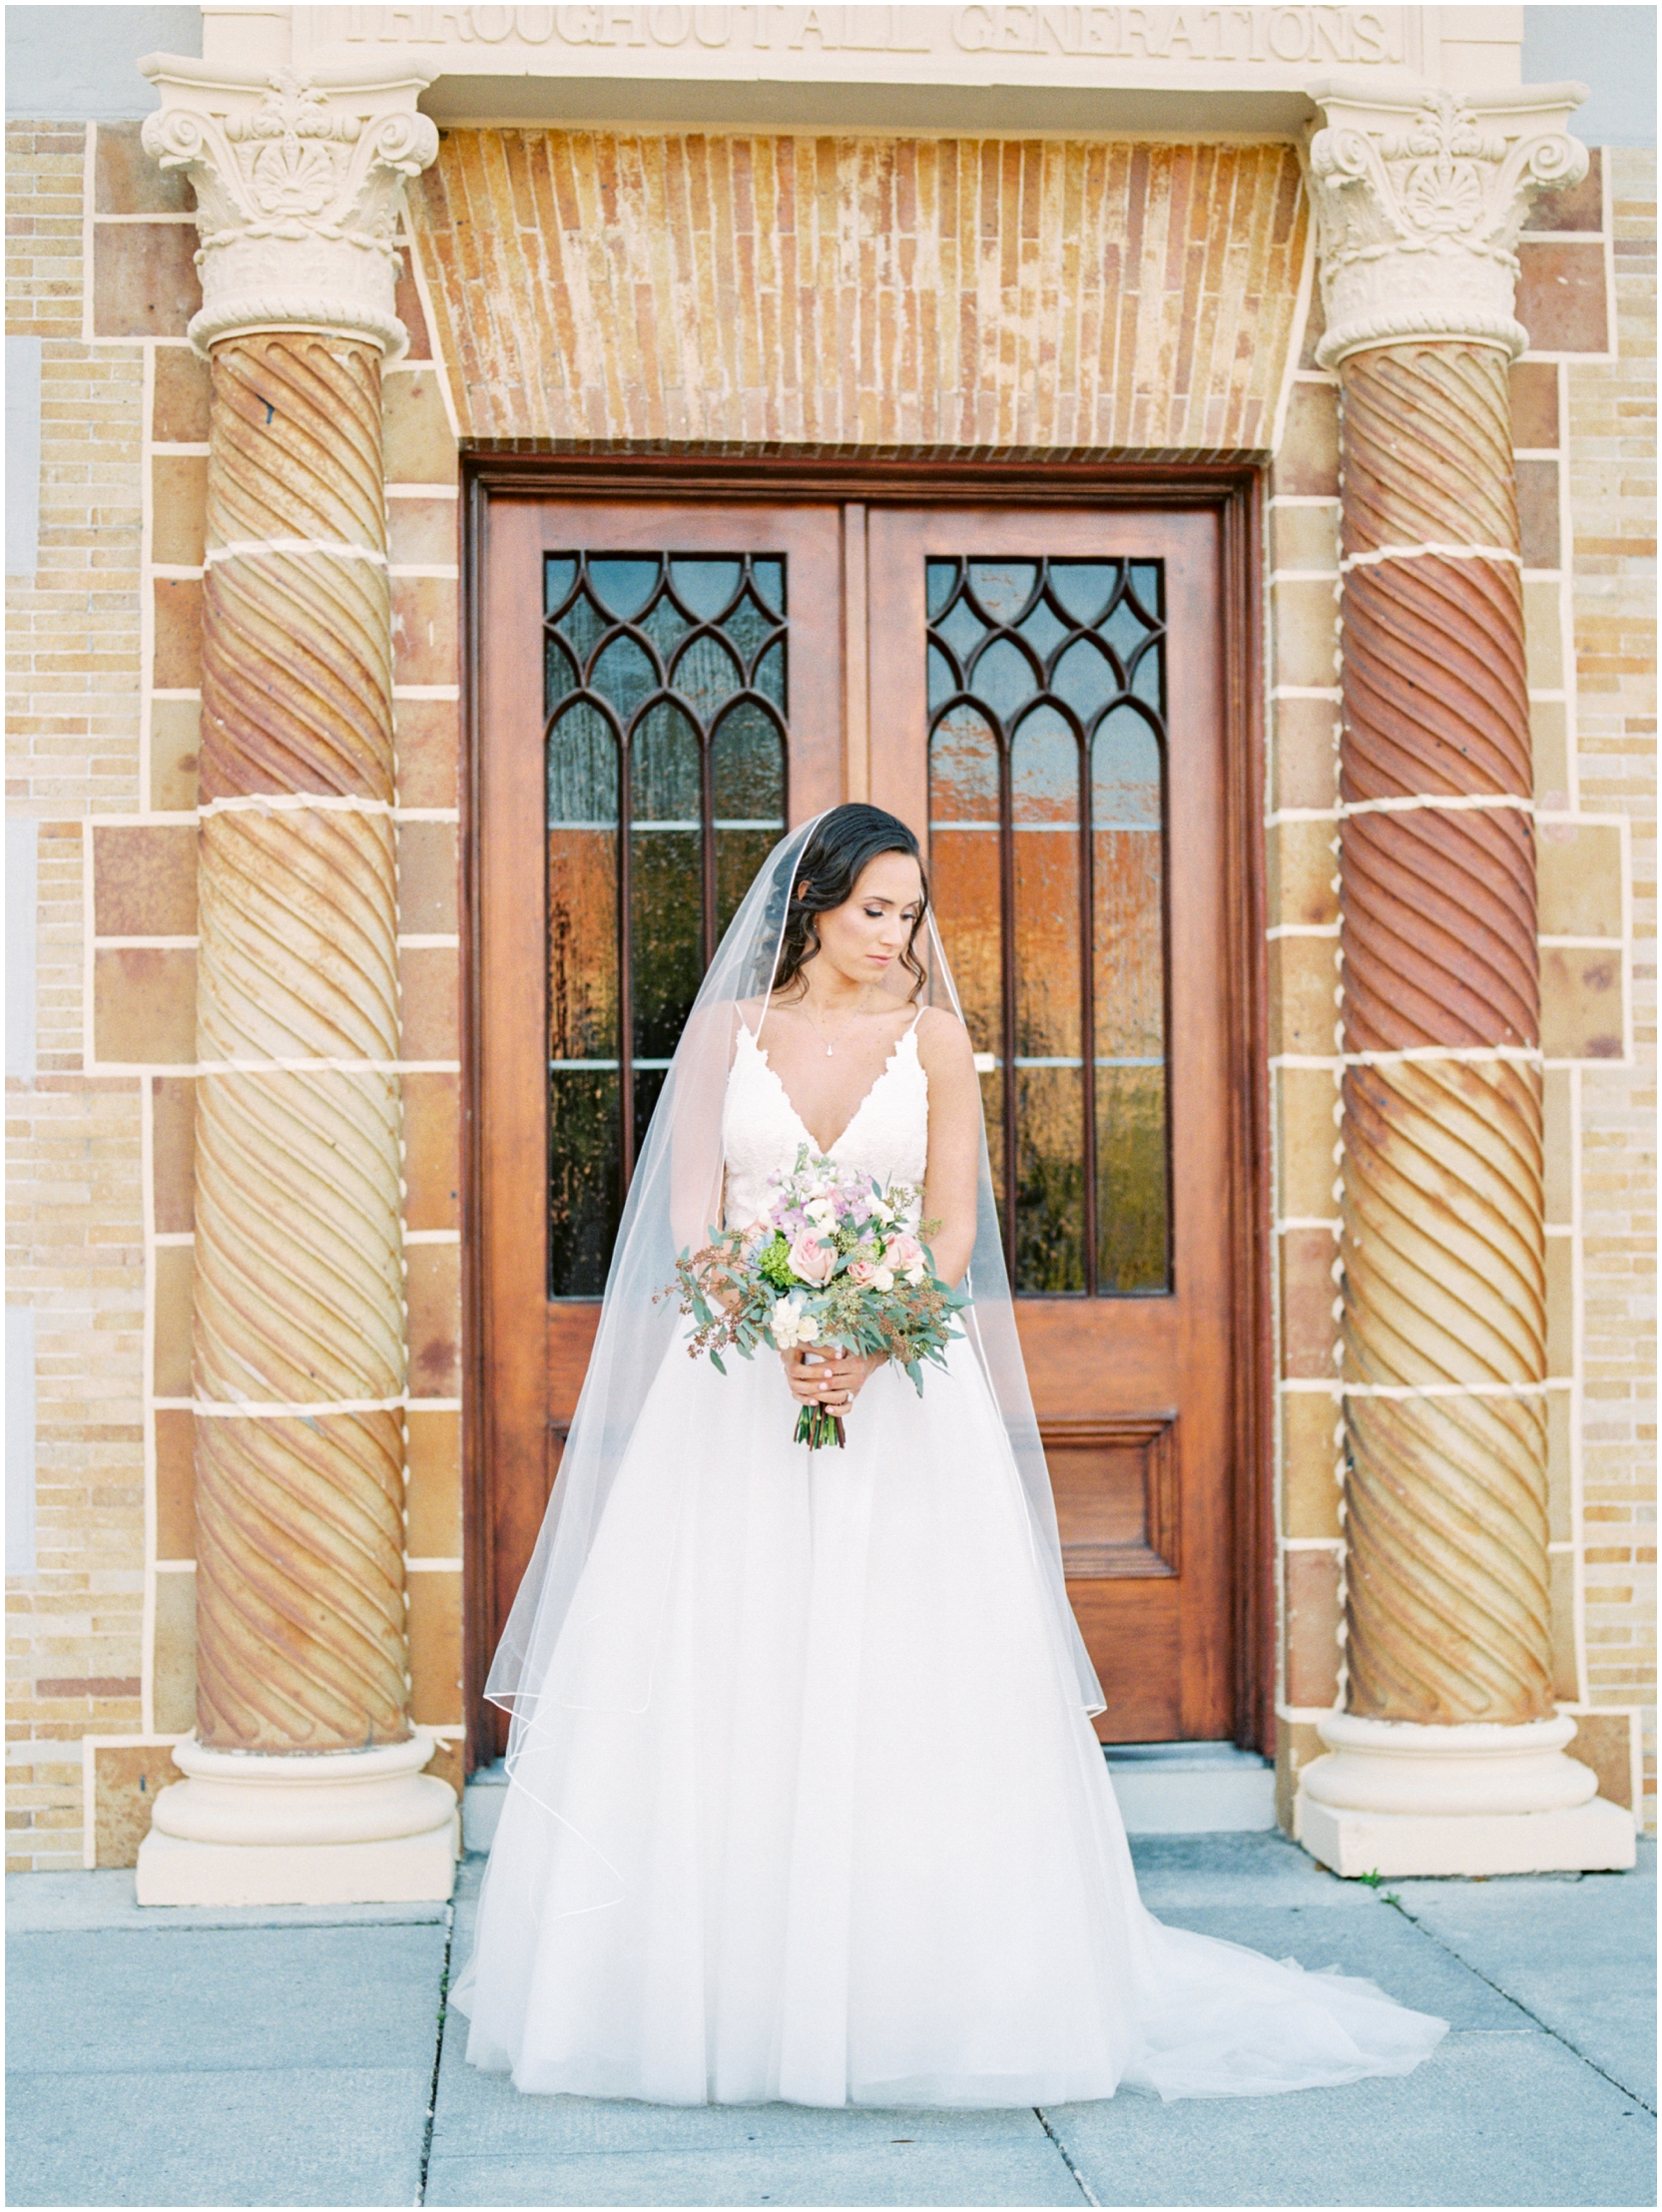 Lisa Silva Photography -Bridal Portrait Session in St. Augustine, Florida- Jacksonville and North East Florida Fine Art Film Photographer_0002.jpg